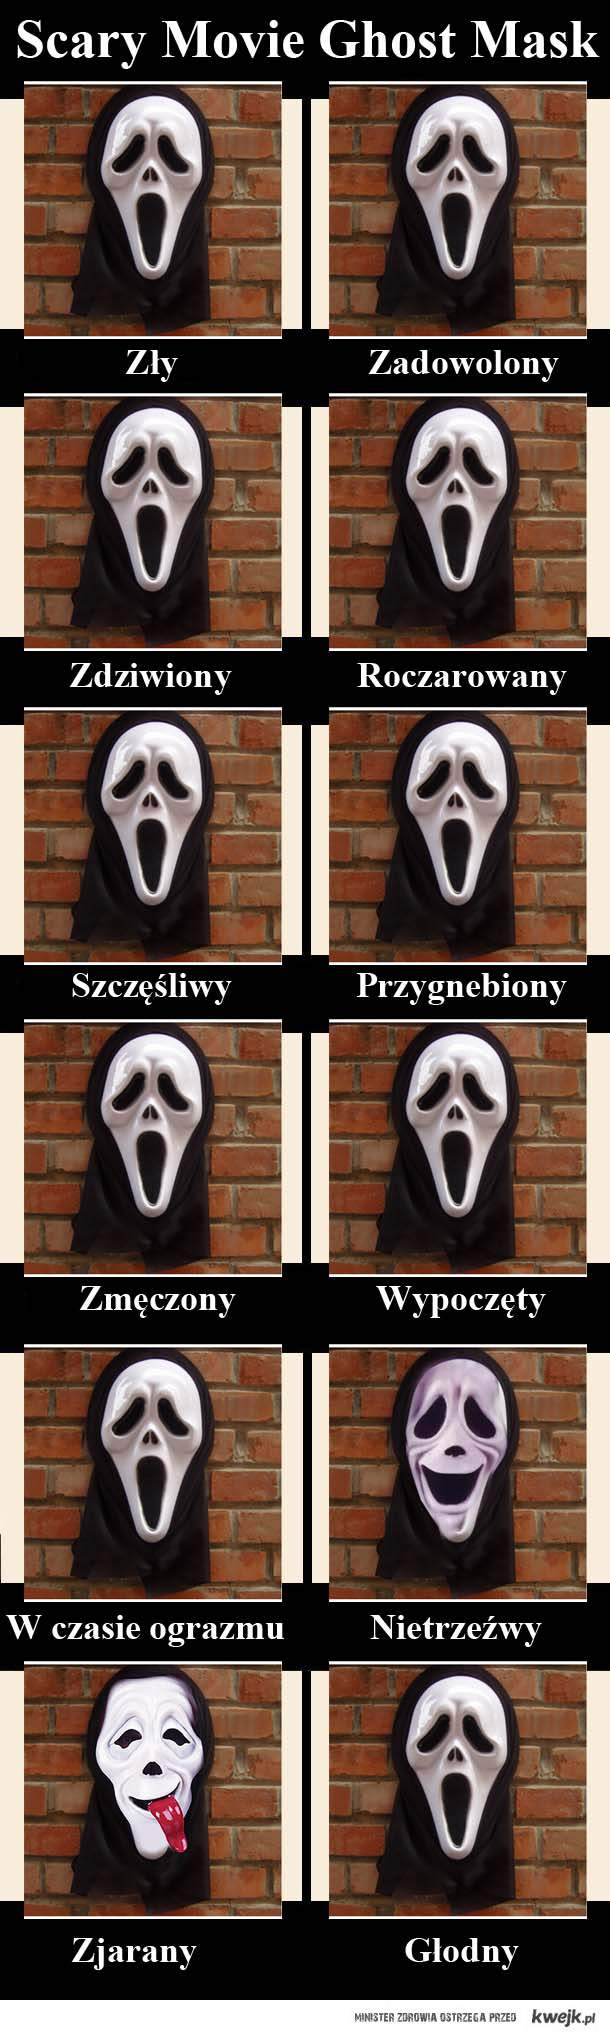 Scary Movie Ghost MAsk